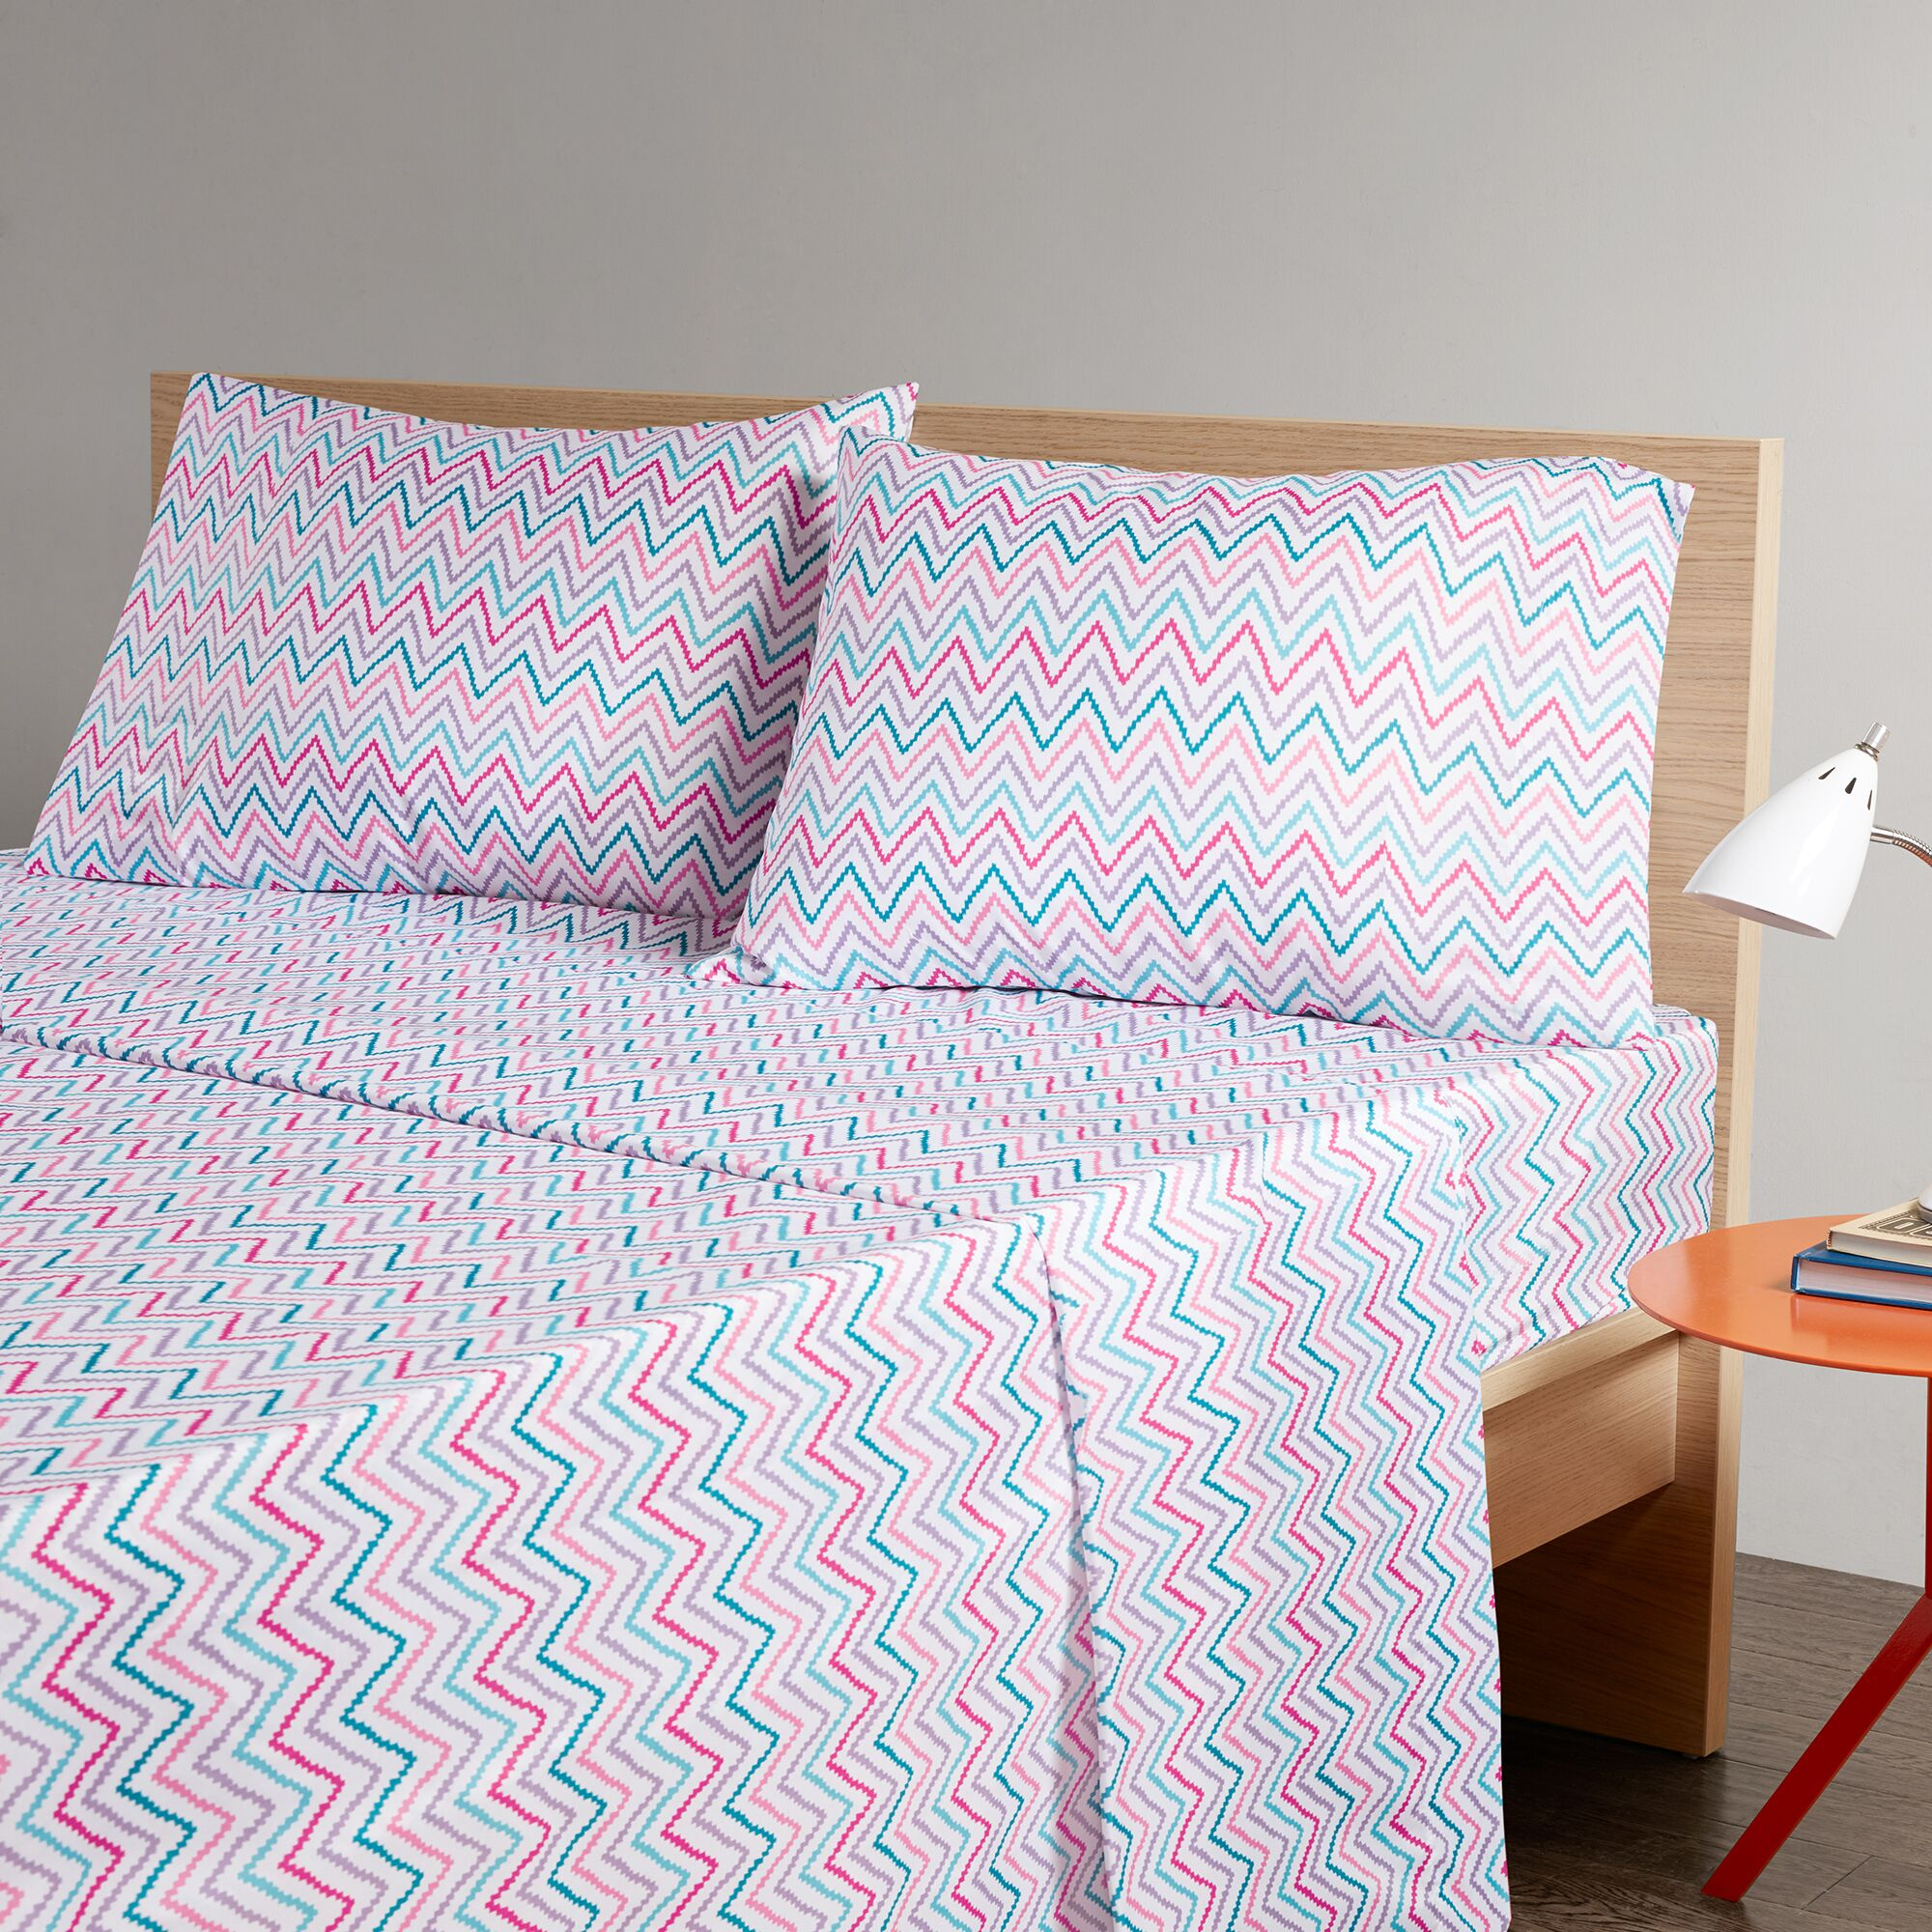 Gillard Chevron Printed Sheet Set Size: Full, Color: Pink/Teal